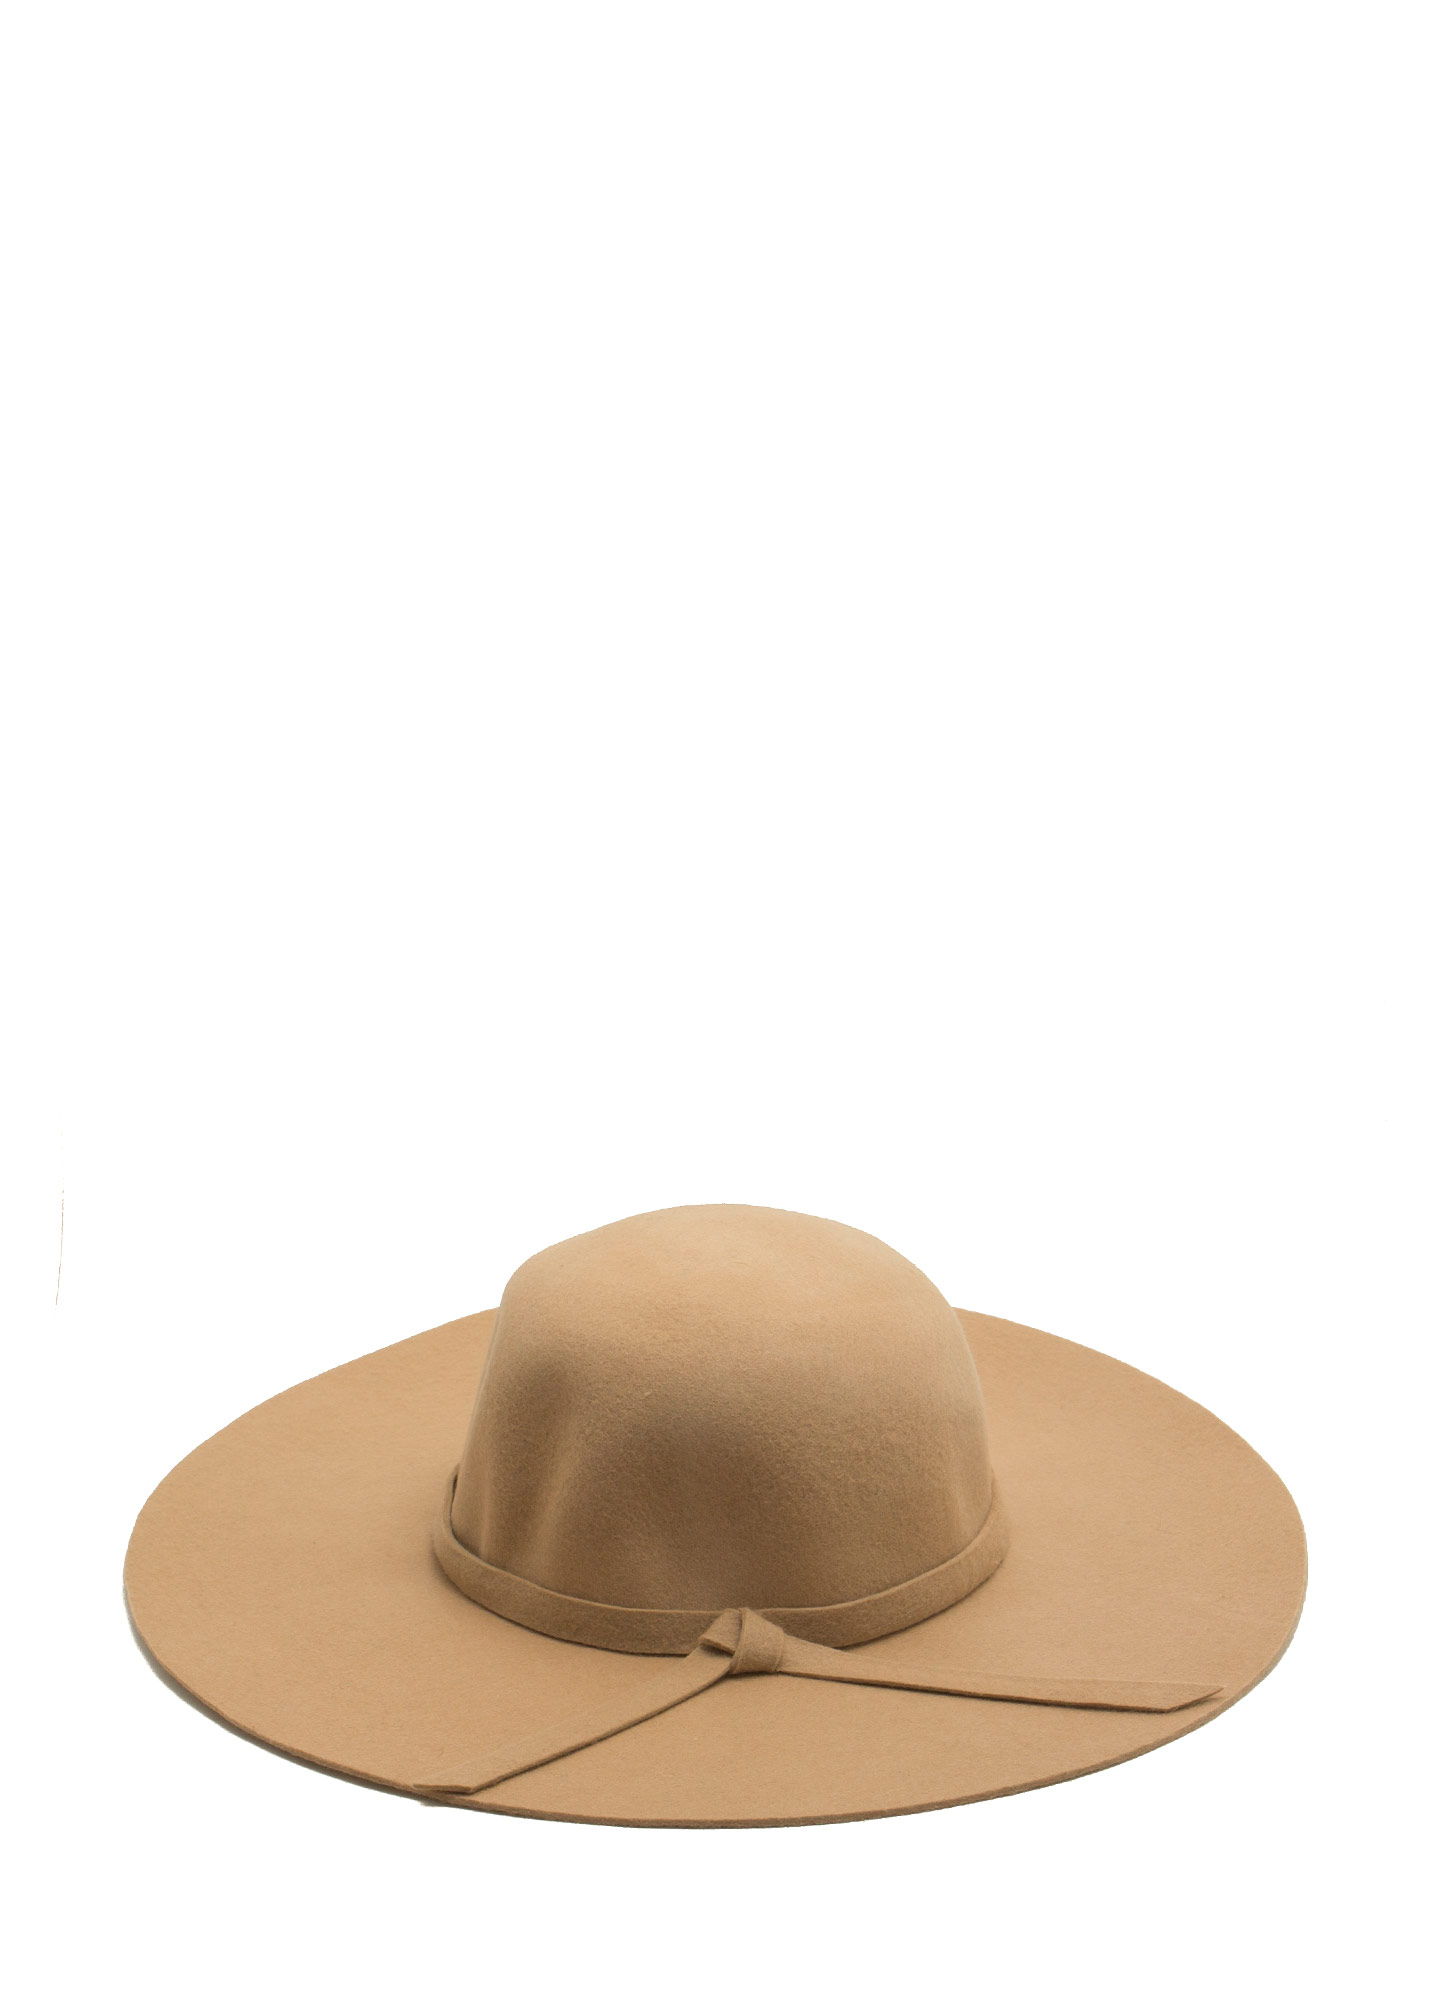 Tied Ribbon Floppy Brim Wool Hat BEIGE